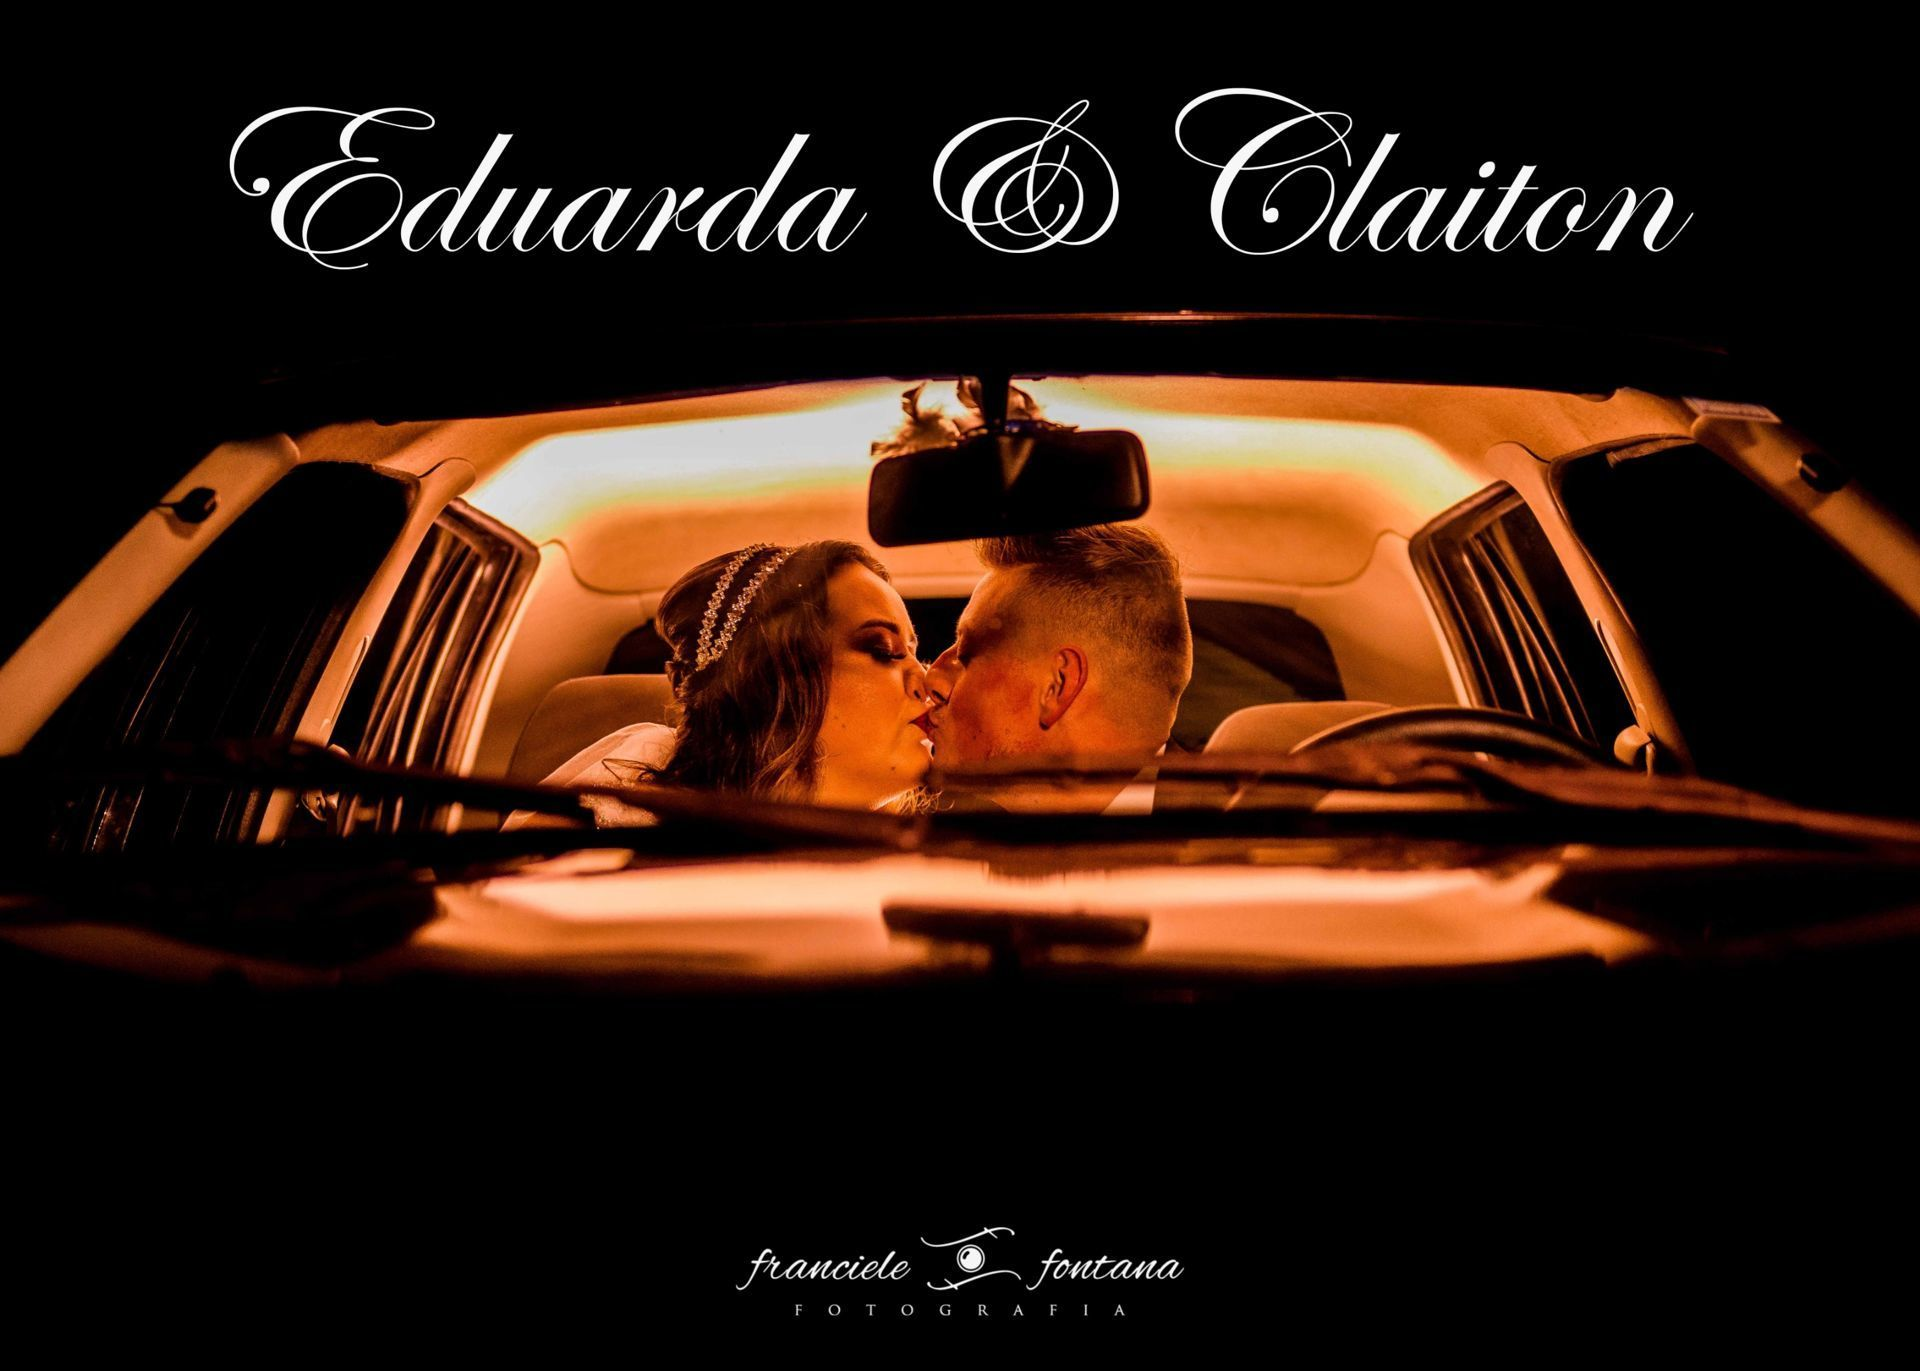 EDUARDA & CLAITON | WEDDING 19/10/2019